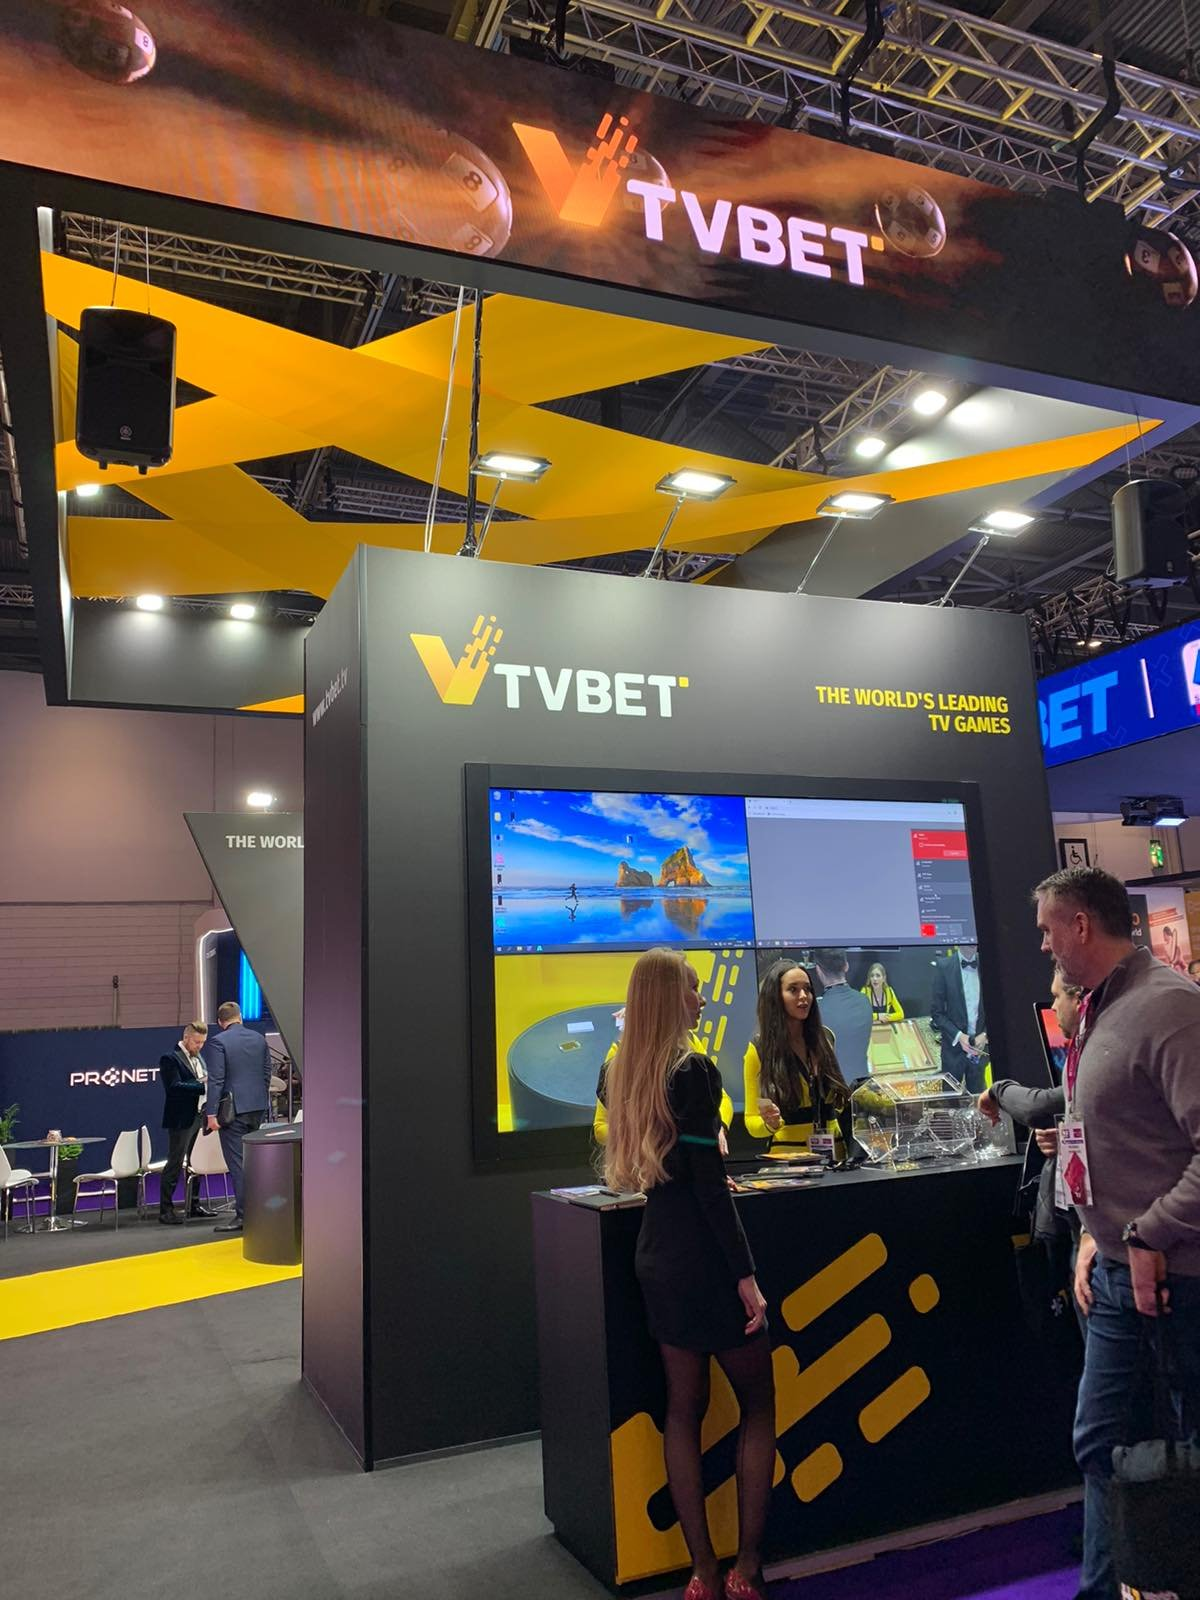 custom stand for TVBET at the ICE London exhibition 2020